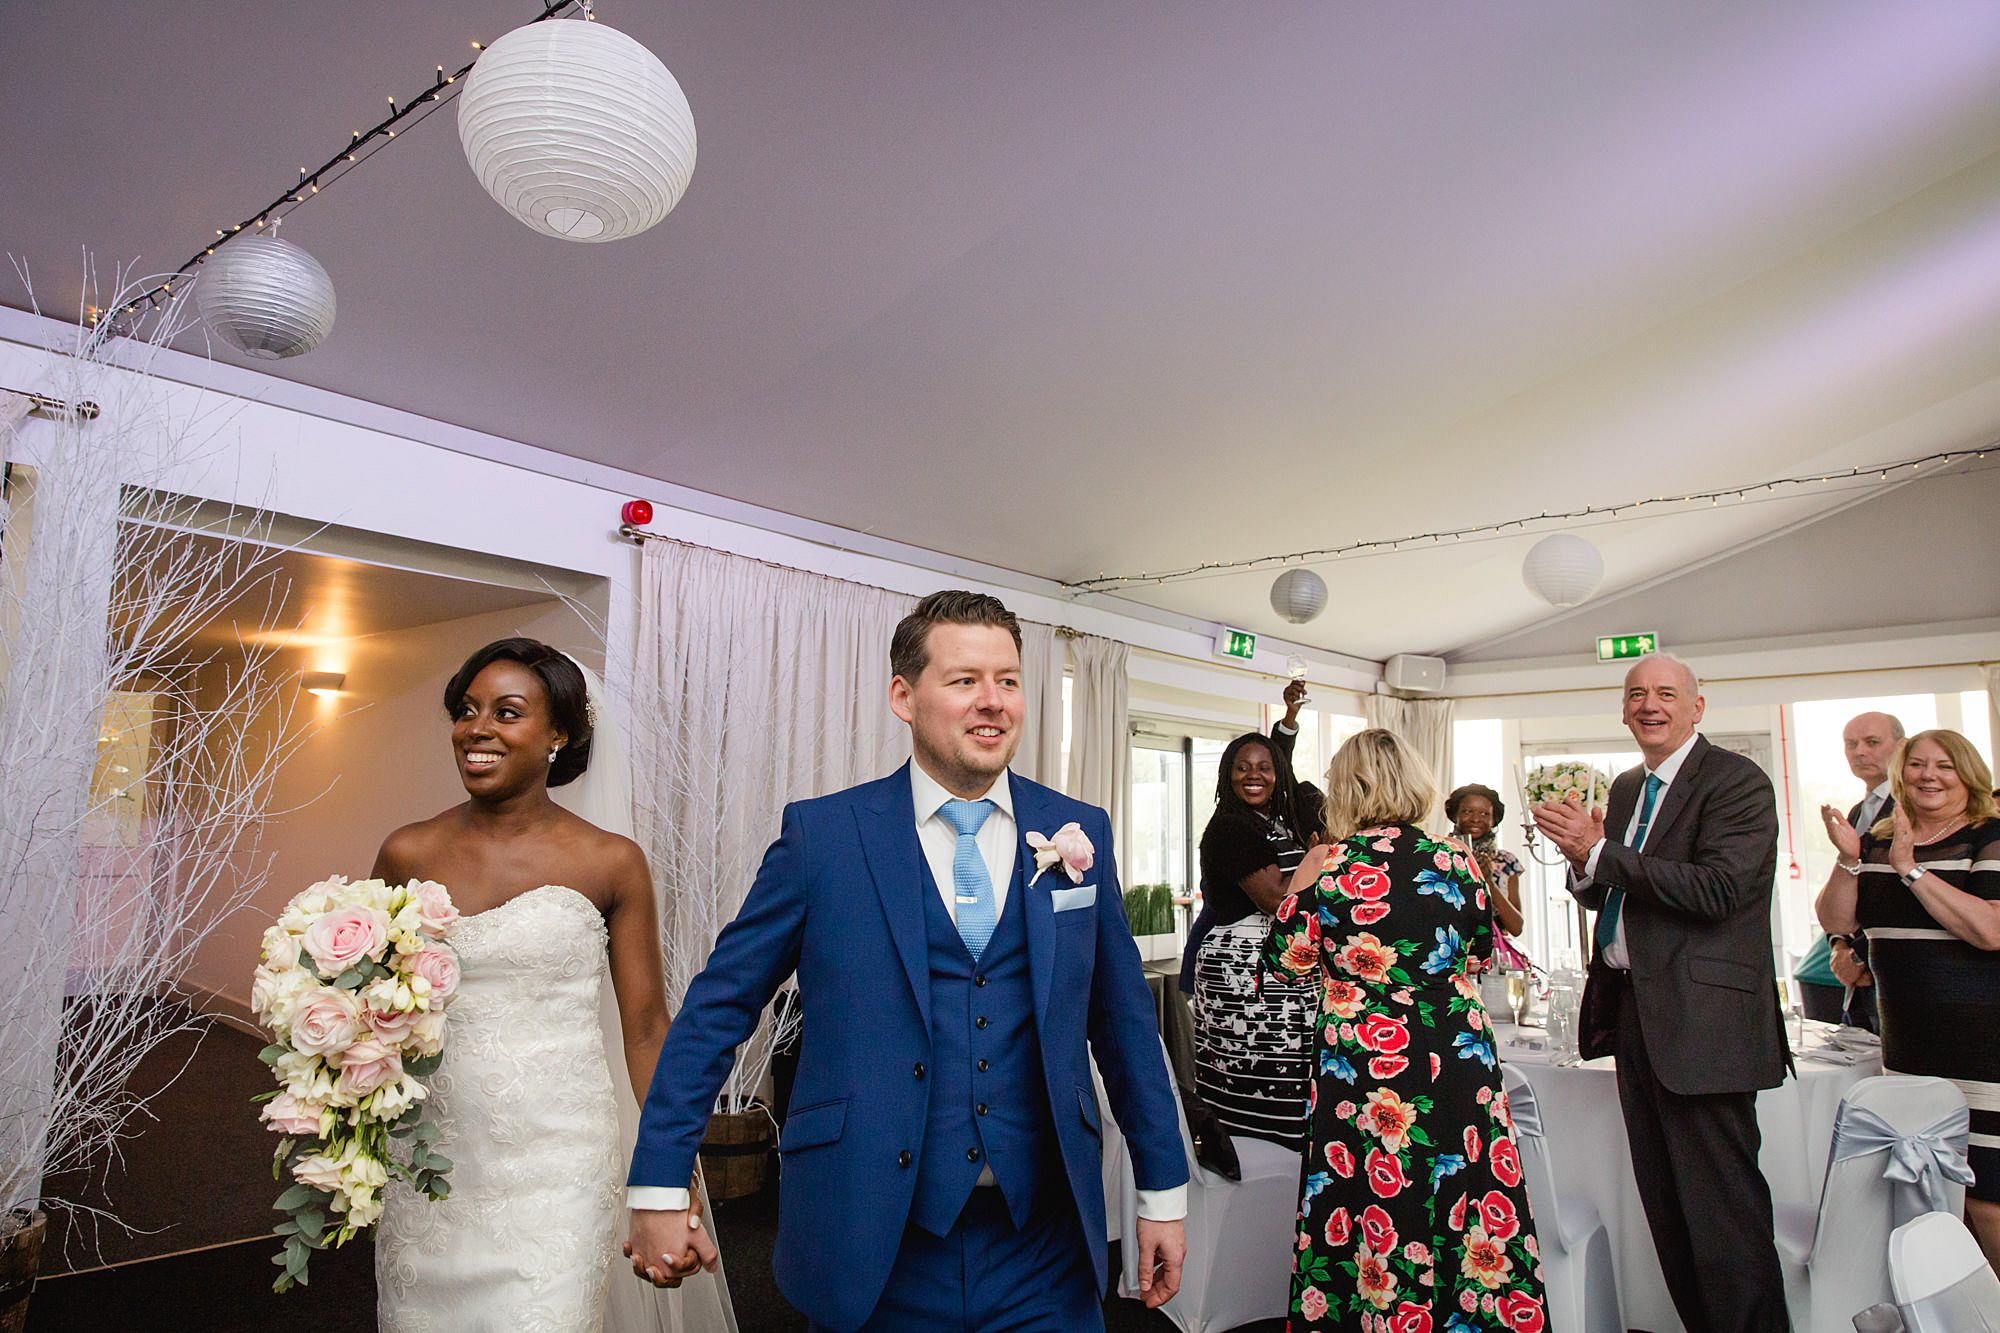 Bank of England Sports Centre wedding bride and groom enter for wedding breakfast